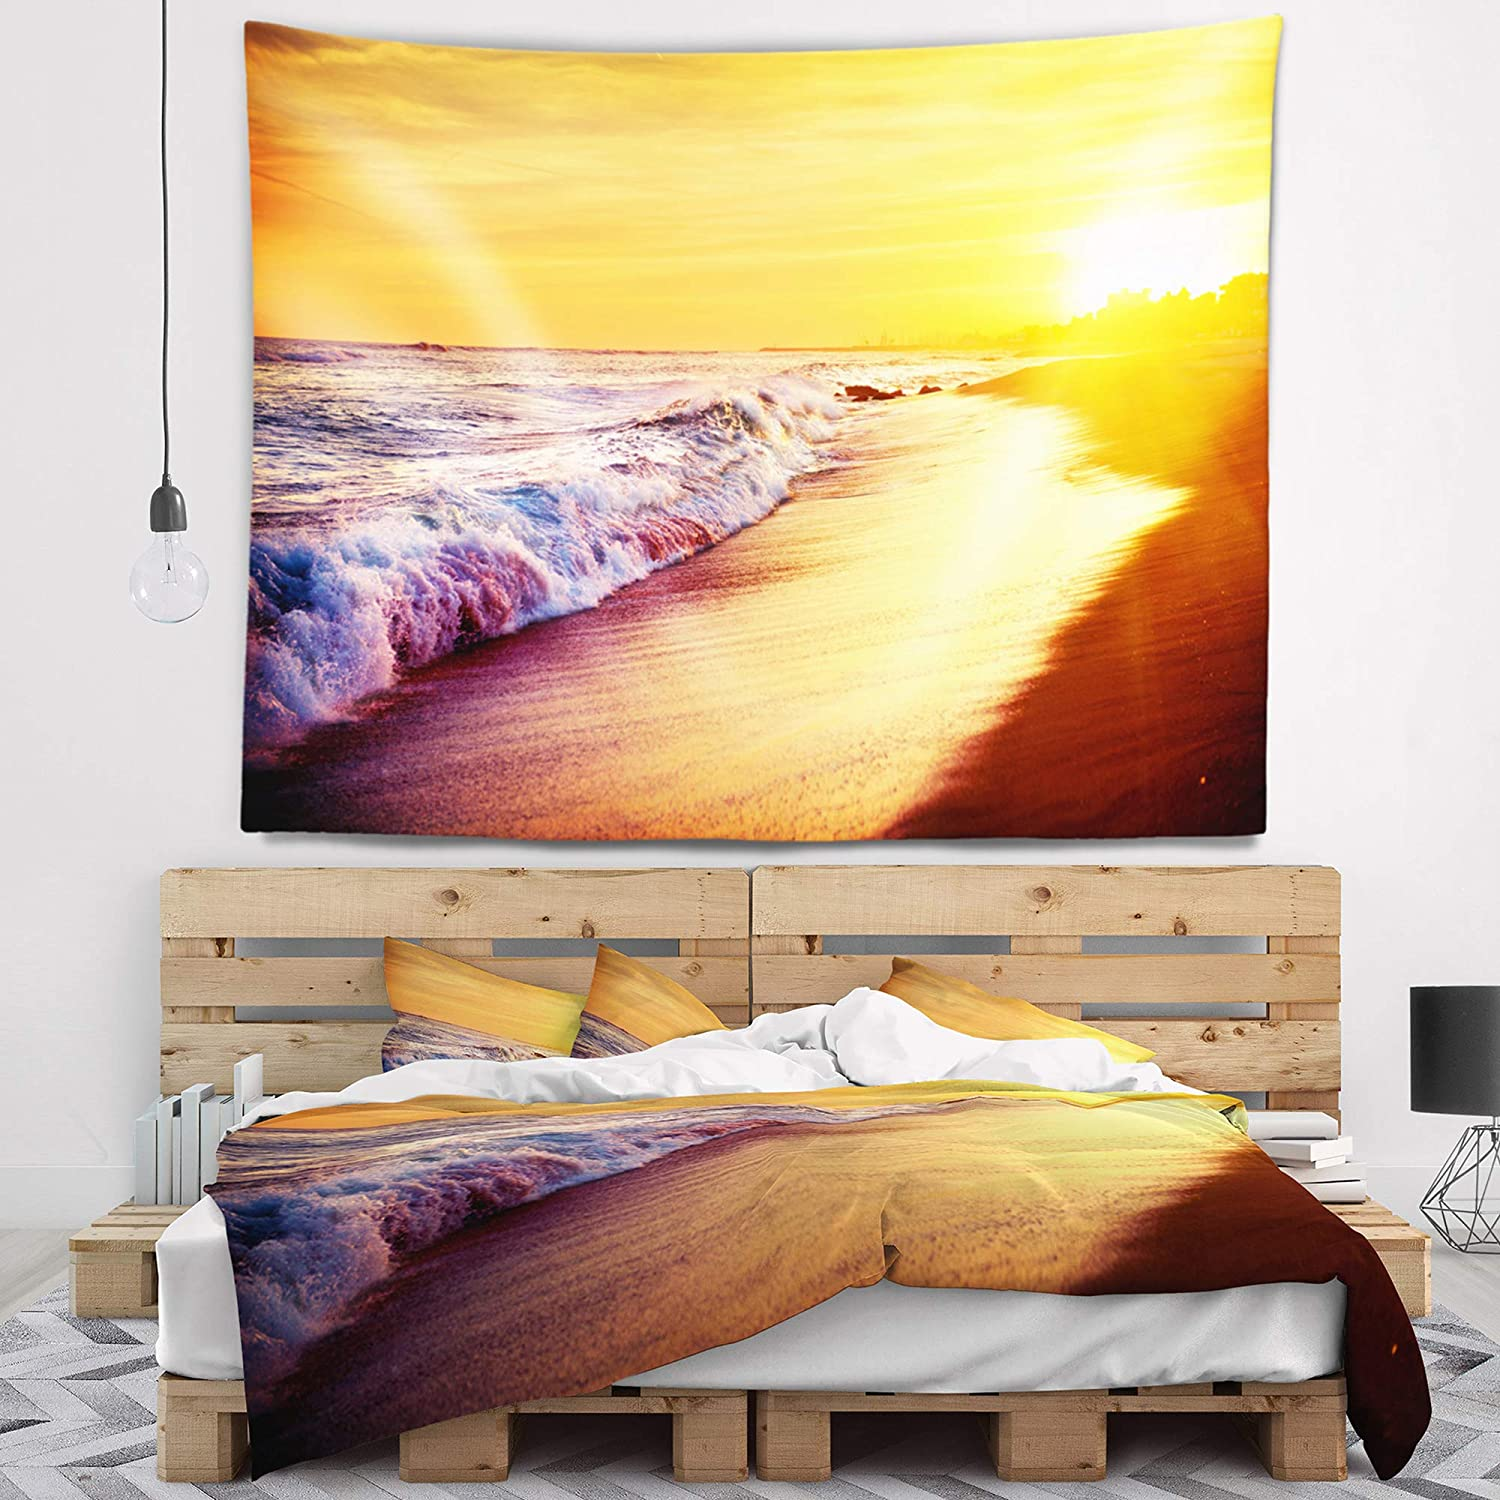 Created On Lightweight Polyester Fabric 80 in Designart TAP10388-80-68  Bright Yellow Sky with Foam Waves Seashore Blanket D/écor Art for Home and Office Wall Tapestry x Large x 68 in